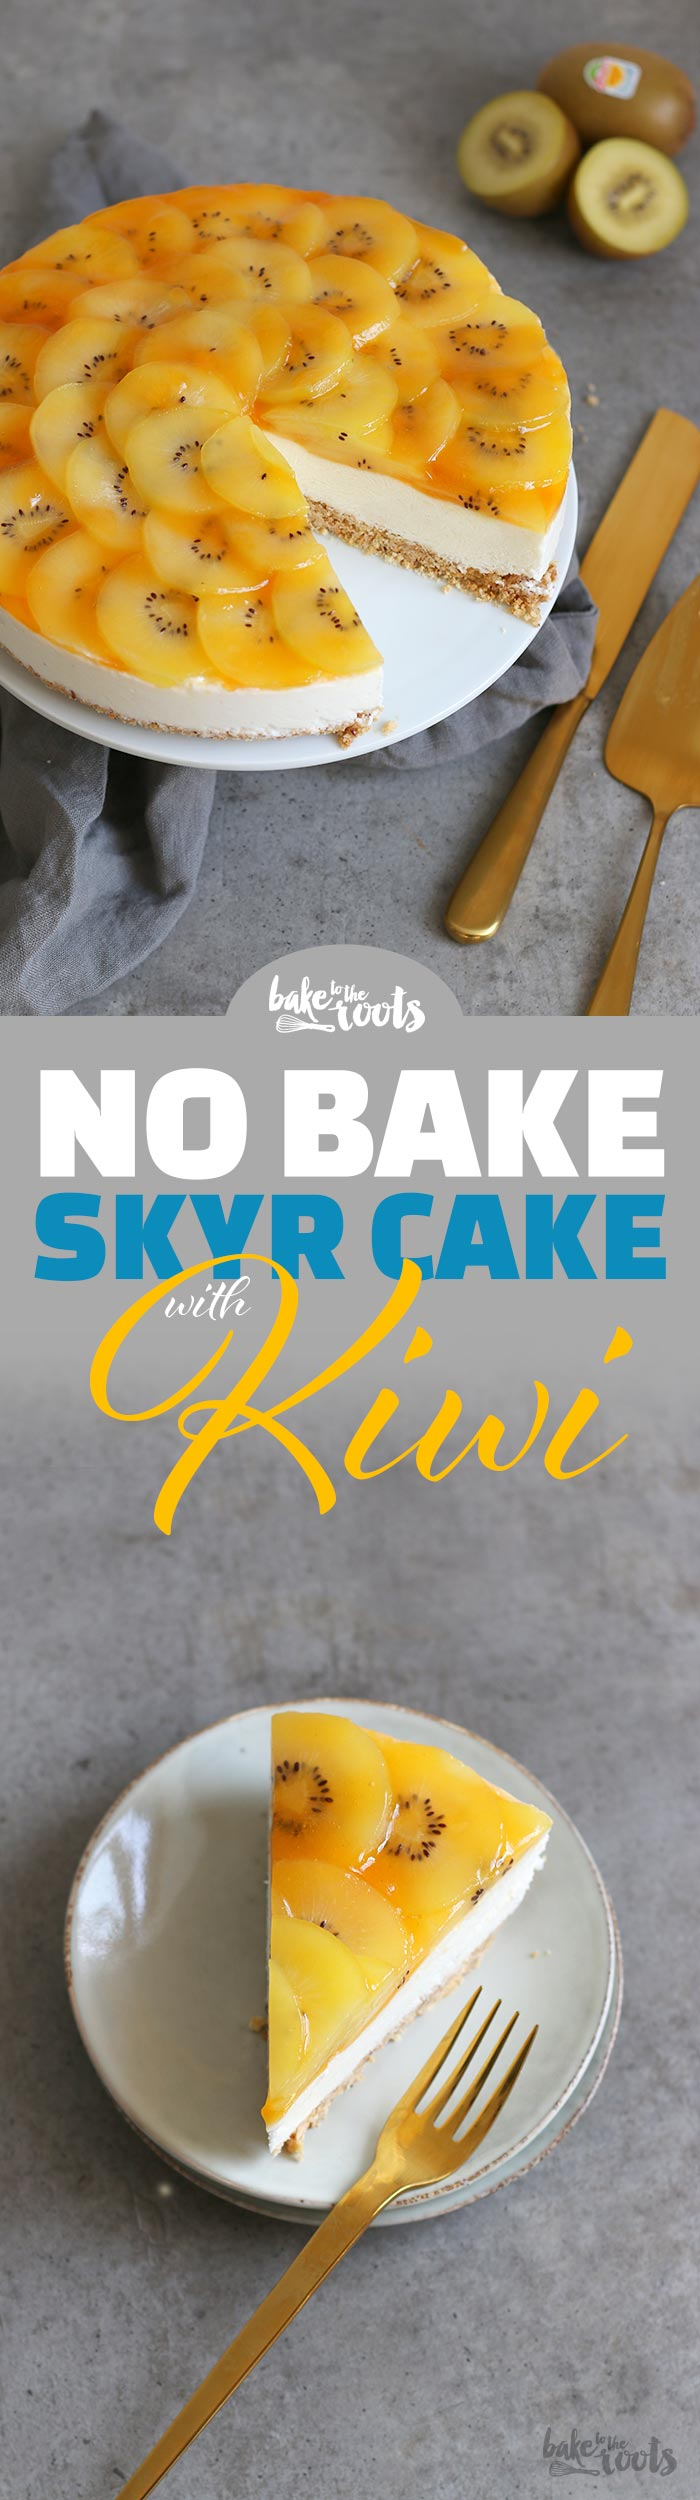 No Bake Skyr Cake mit Kiwi | Bake to the roots